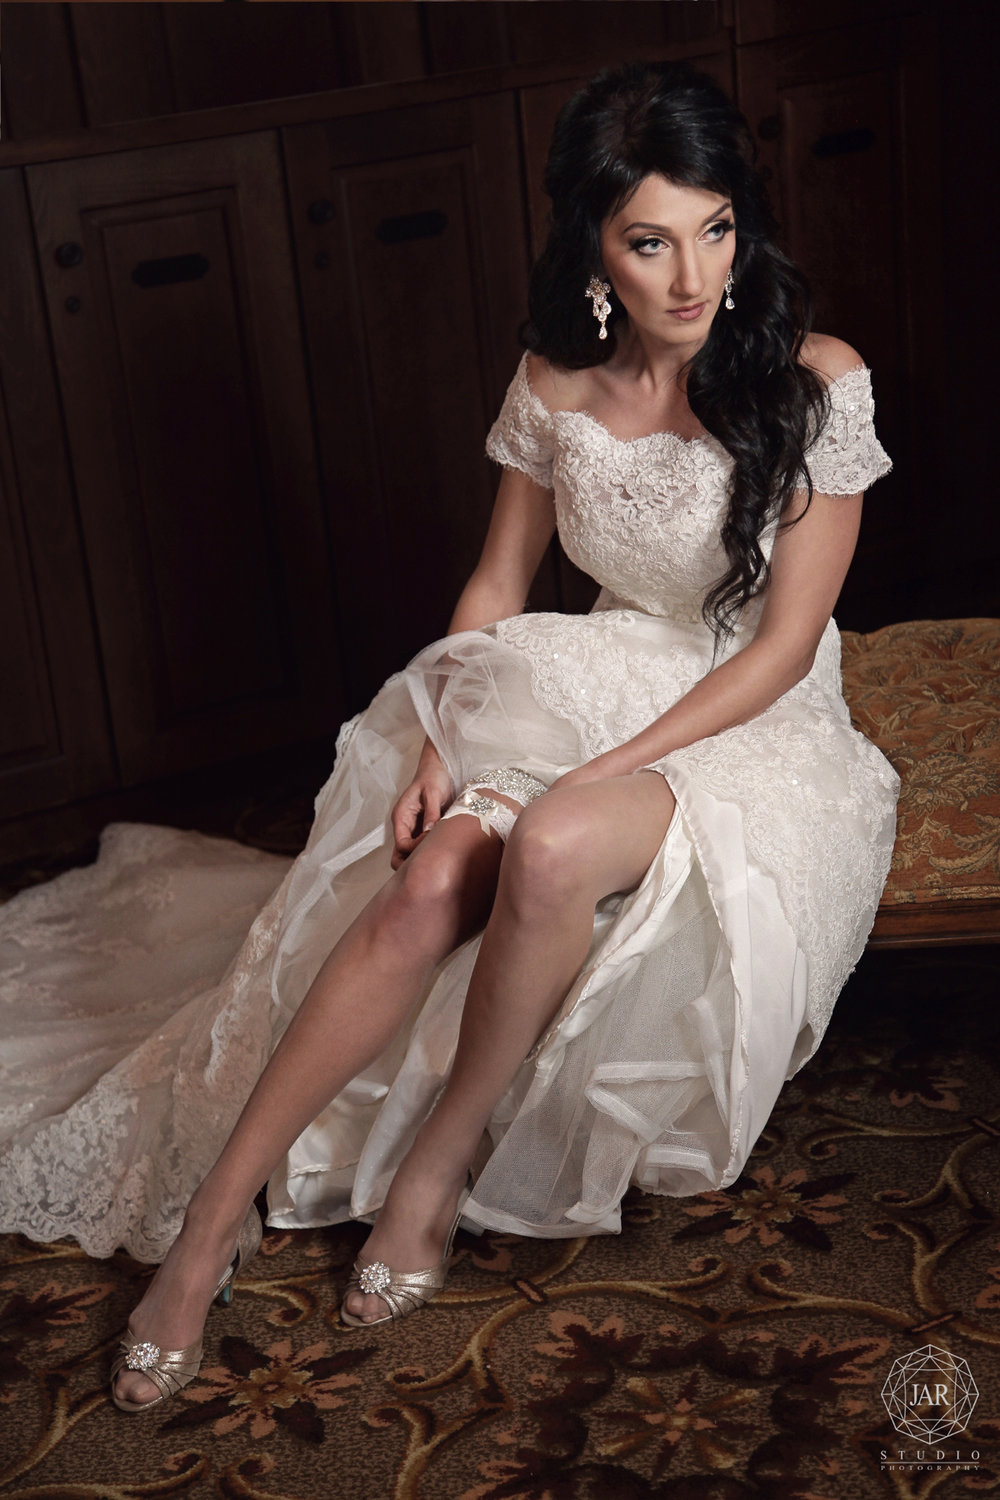 14-elegant-bride-dress-jarstudio-photography-bella-collina.JPG